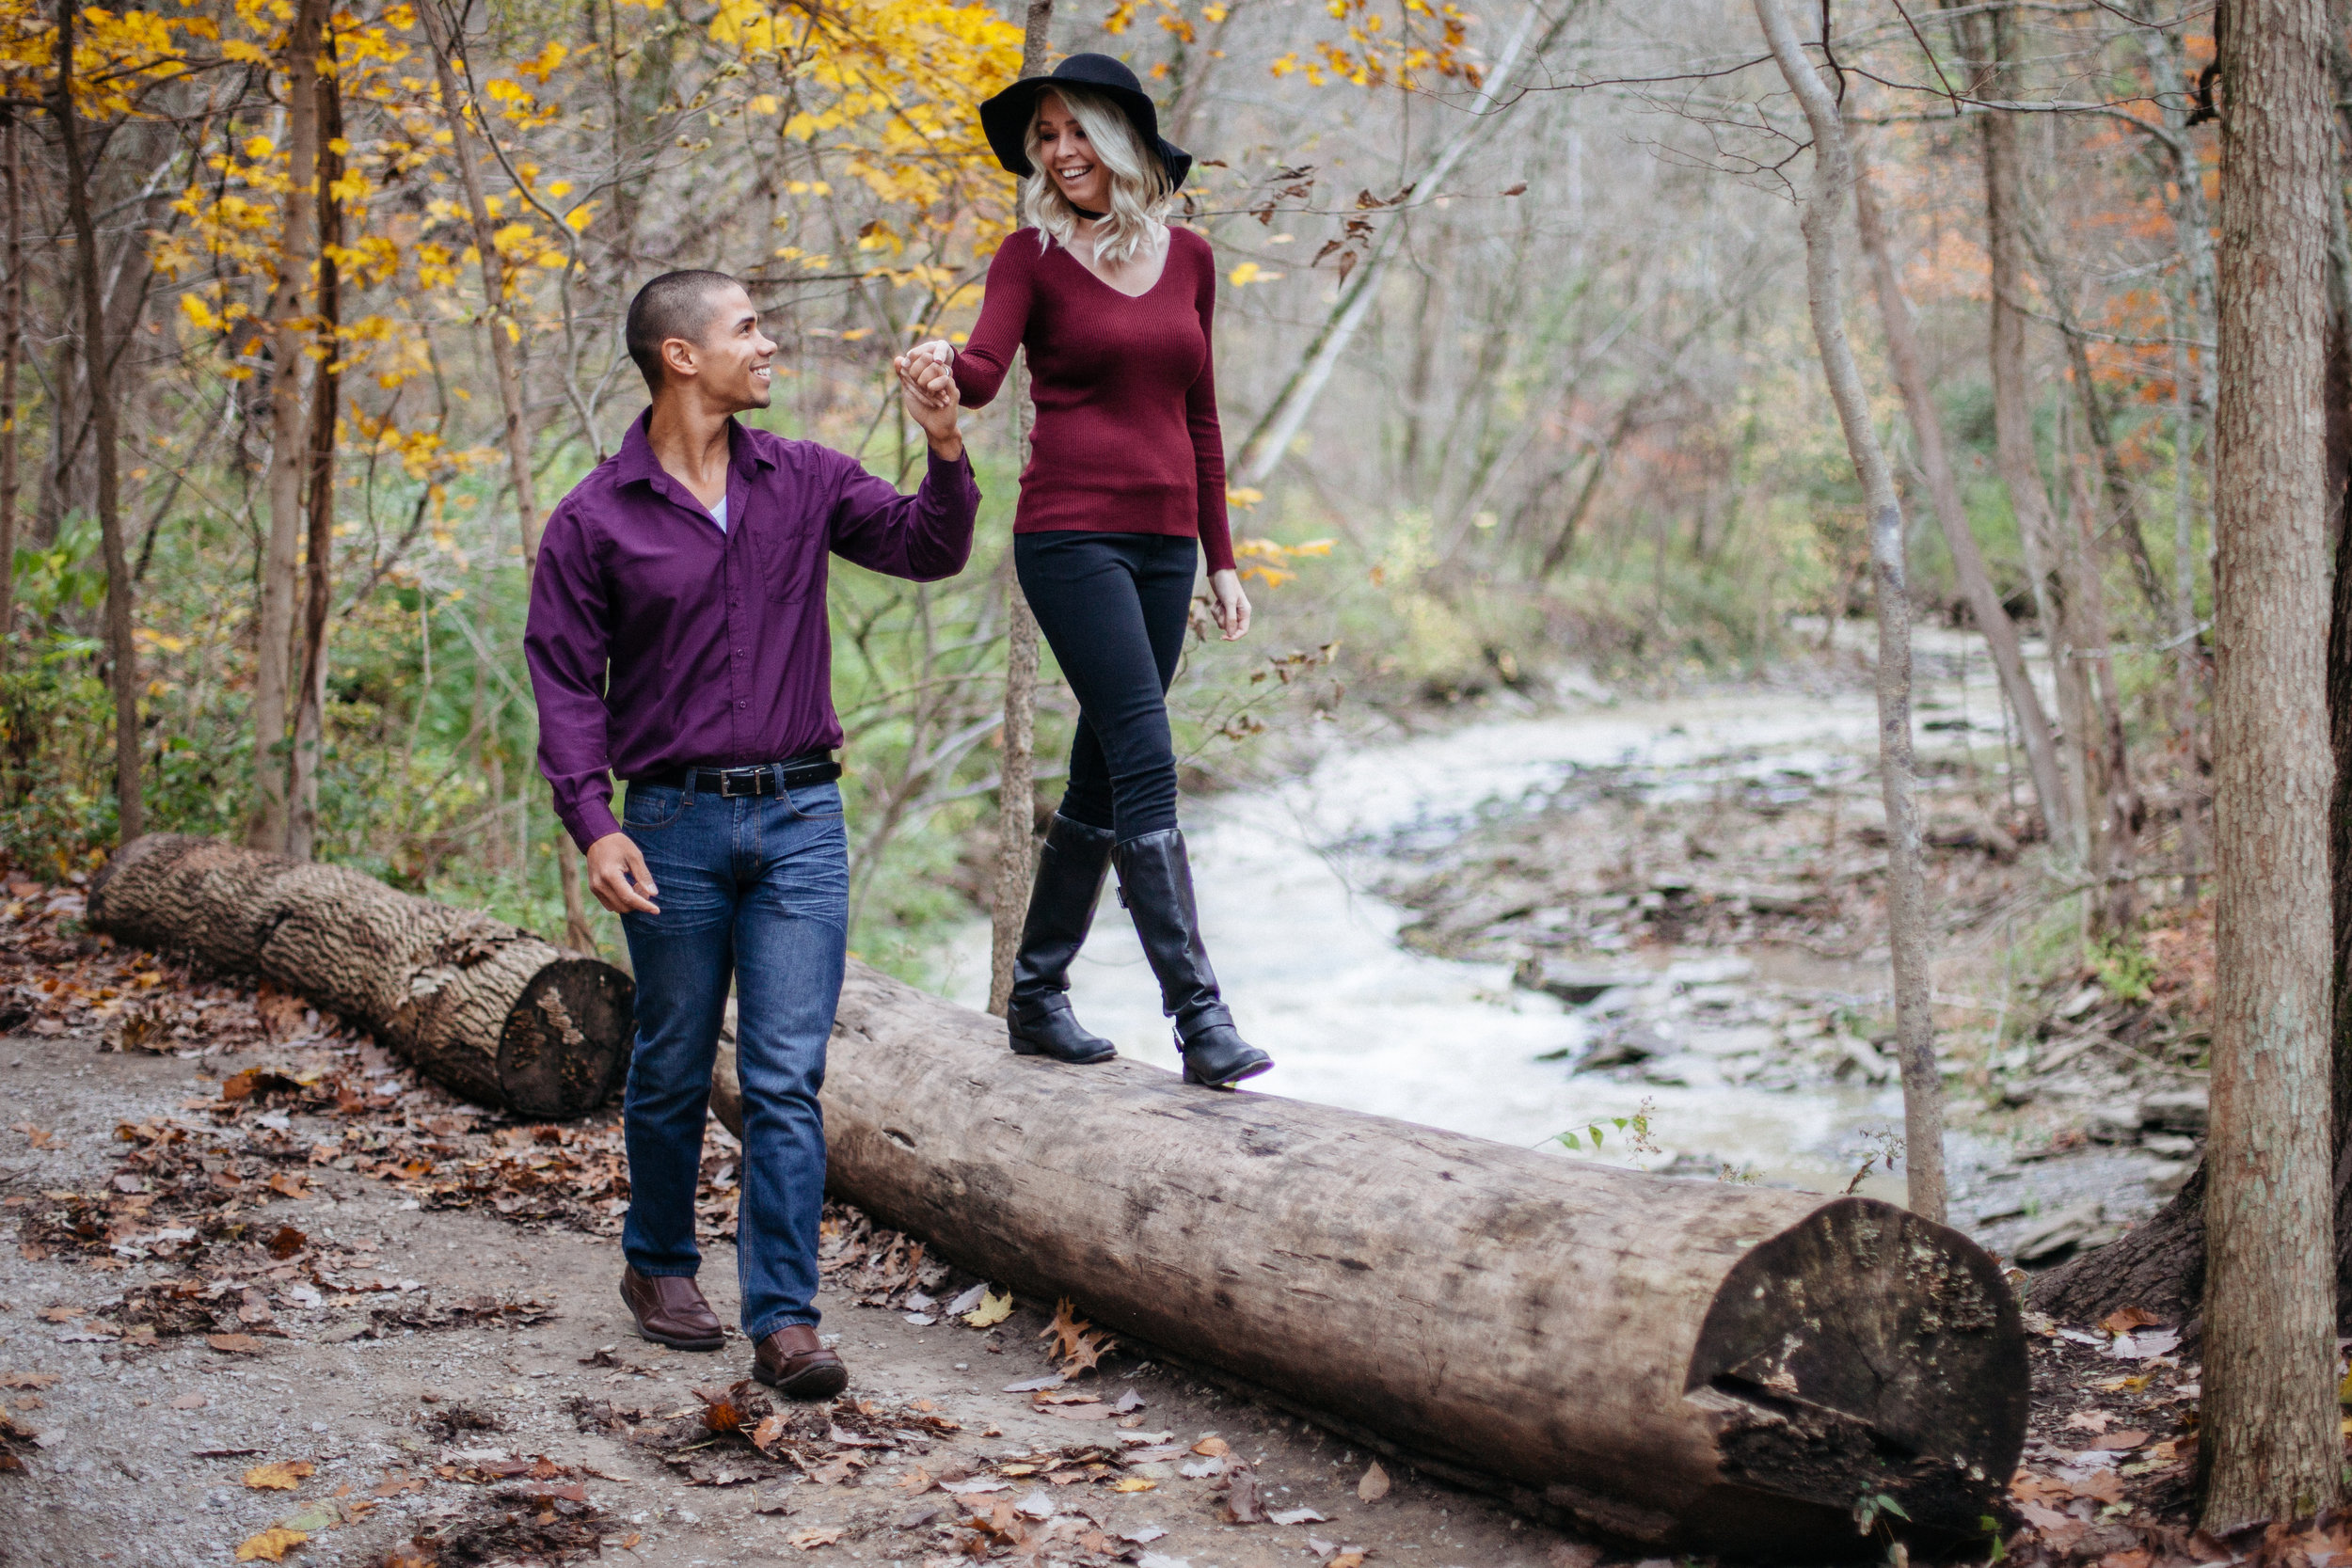 Engagement Session - $200 - 2 hour session, up to two locations, online gallery of 20-25 high resolution photos